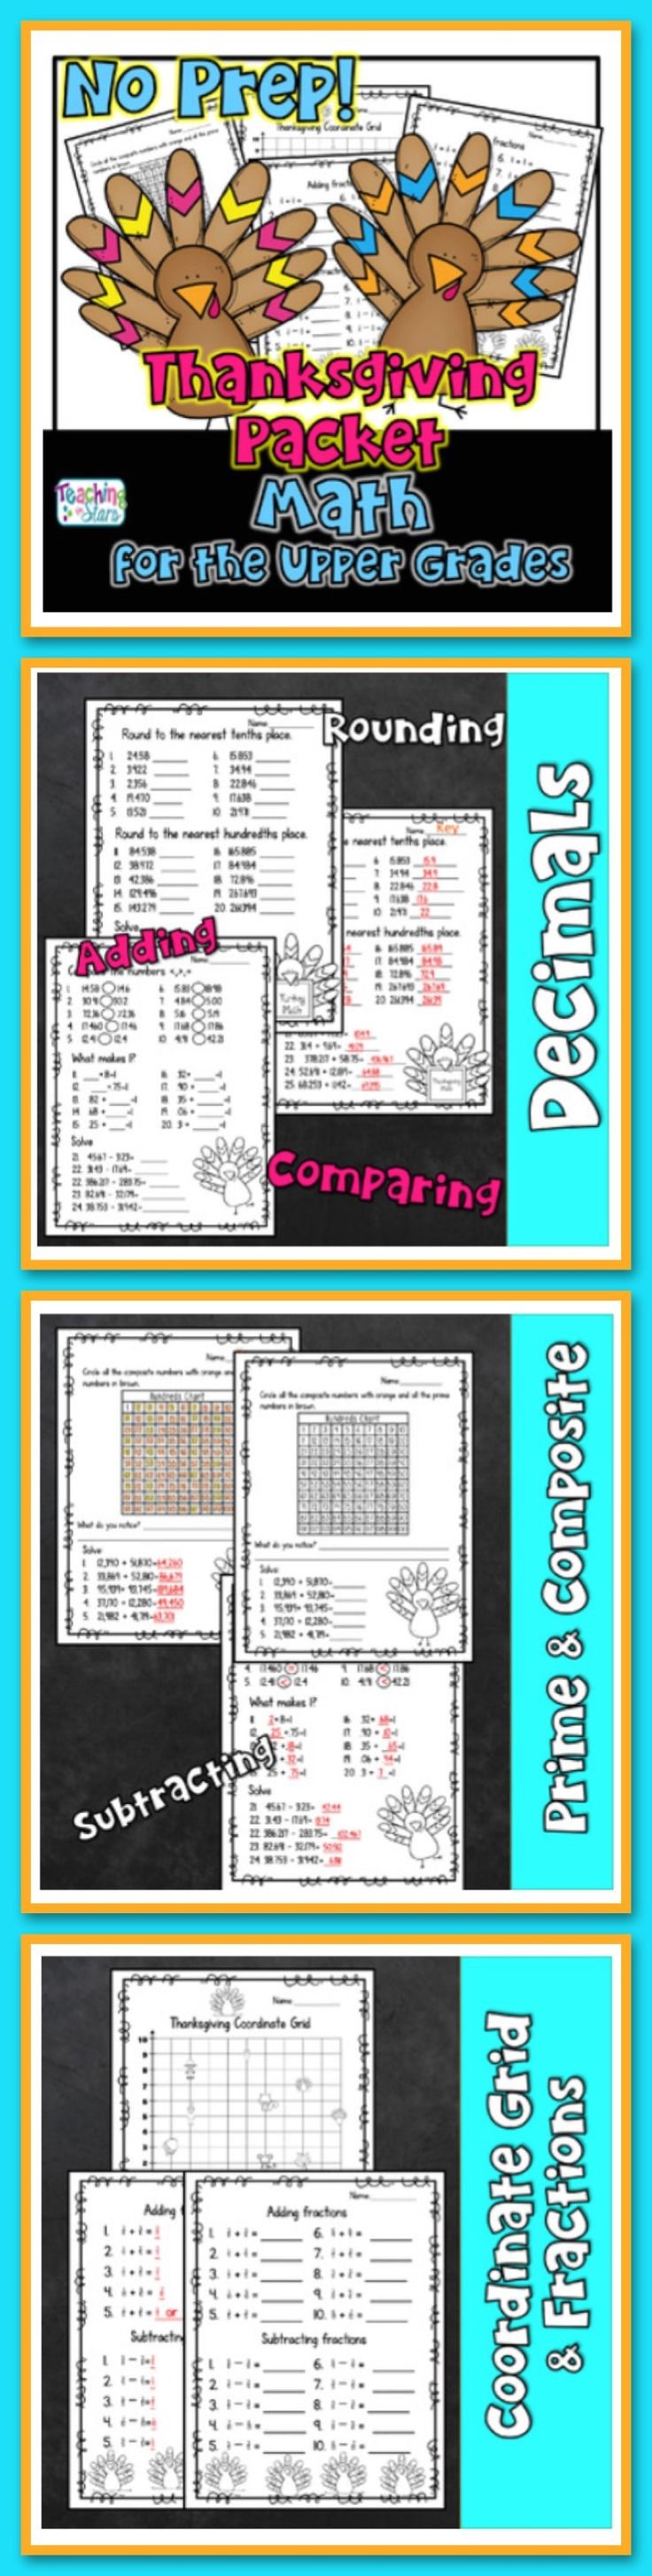 worksheet Act Math Worksheets the 25 best thanksgiving math worksheets ideas on pinterest worksheets